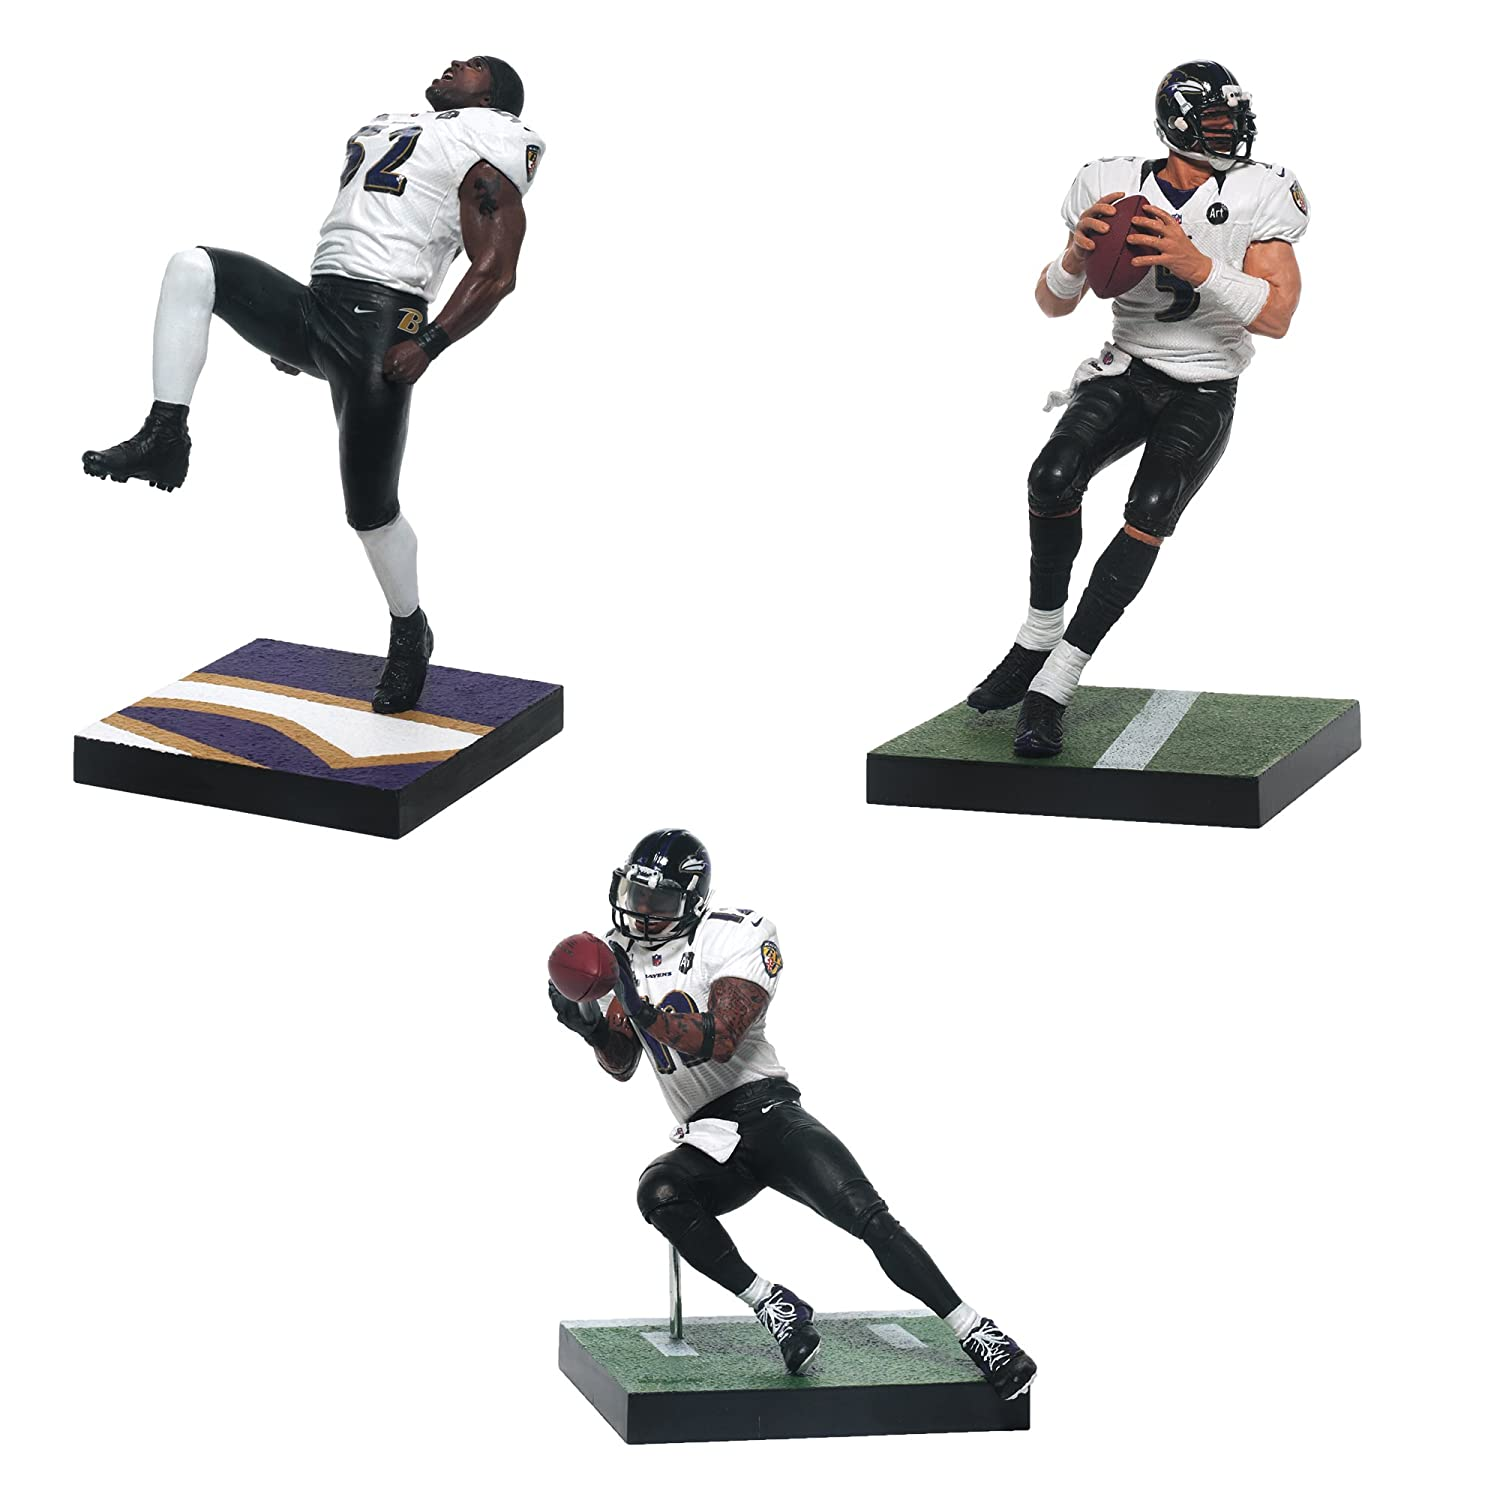 amazon com mcfarlane toys baltimore ravens nfl super bowl action